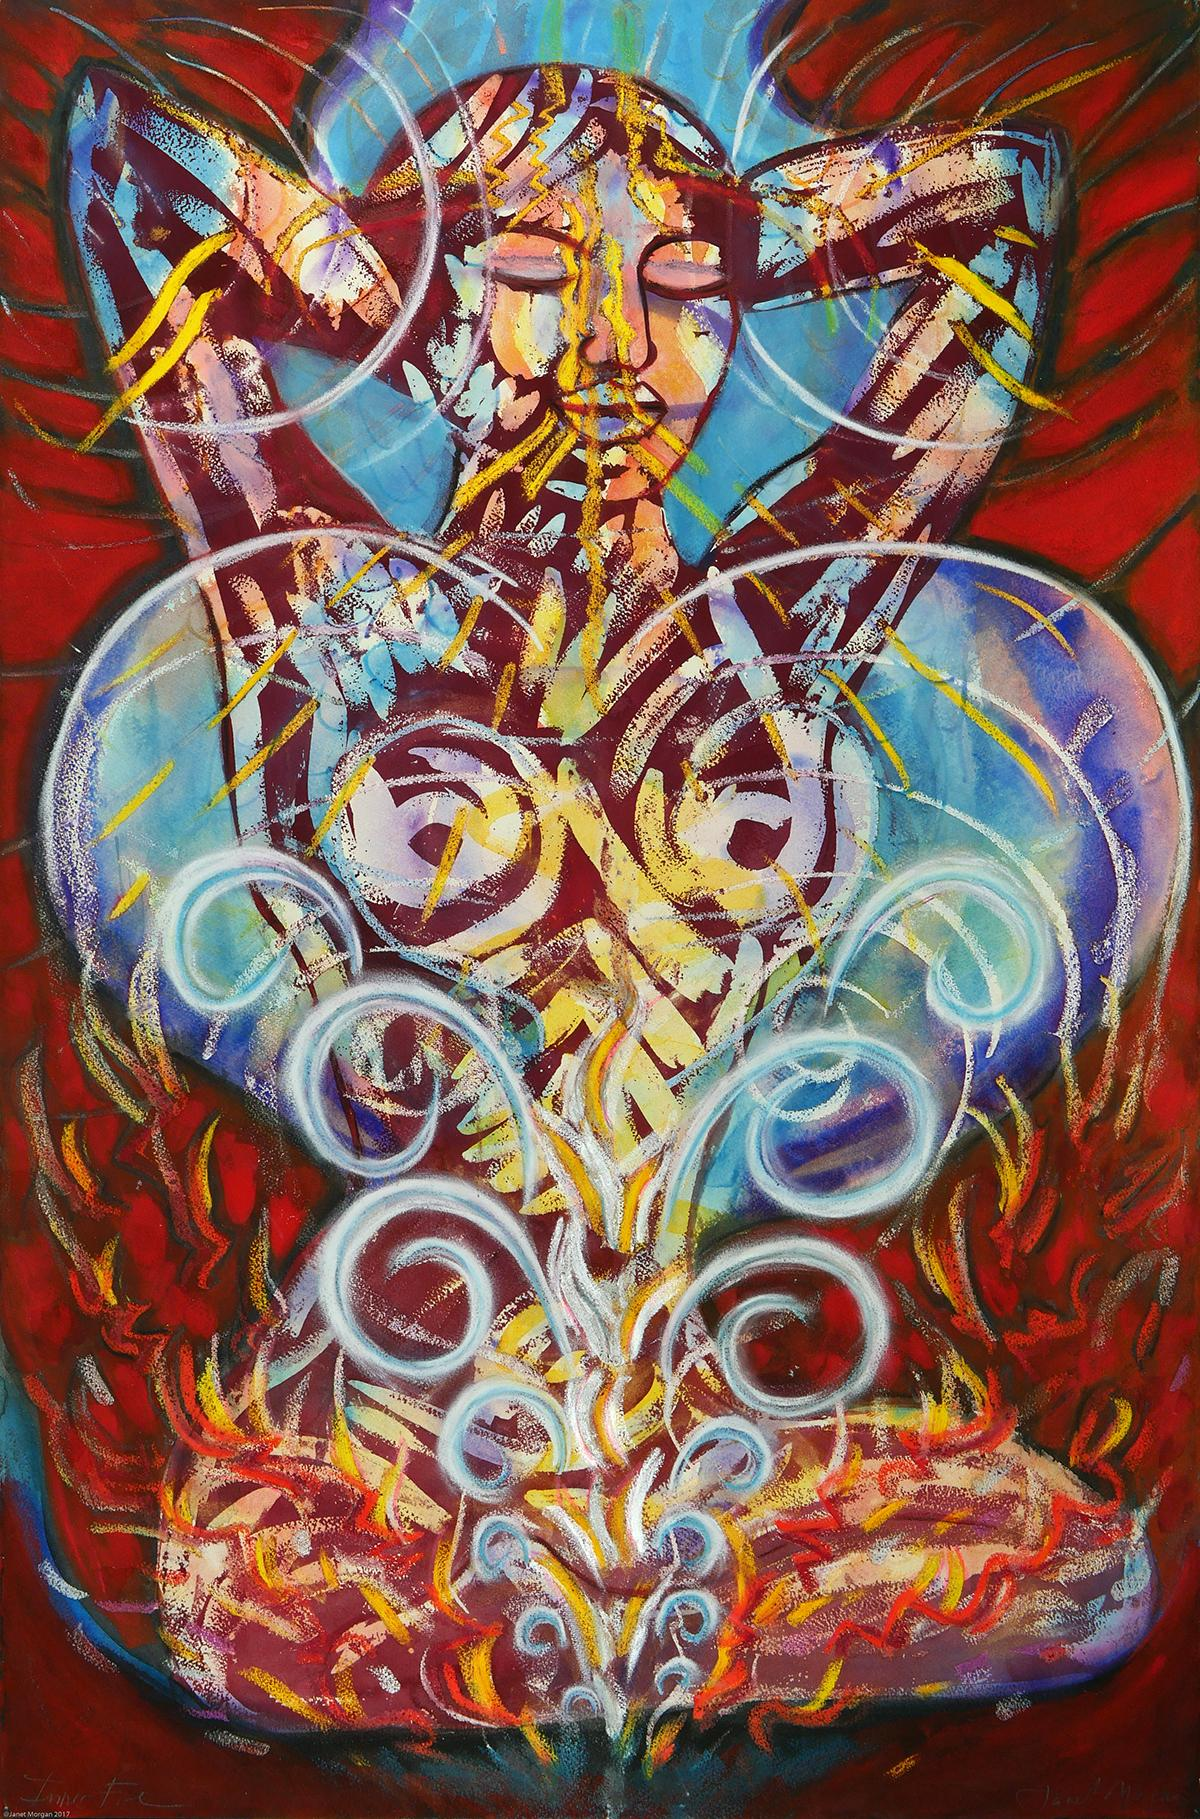 Inner Fire, mythical, spiritual, energy, colorful, watercolor on archival paper